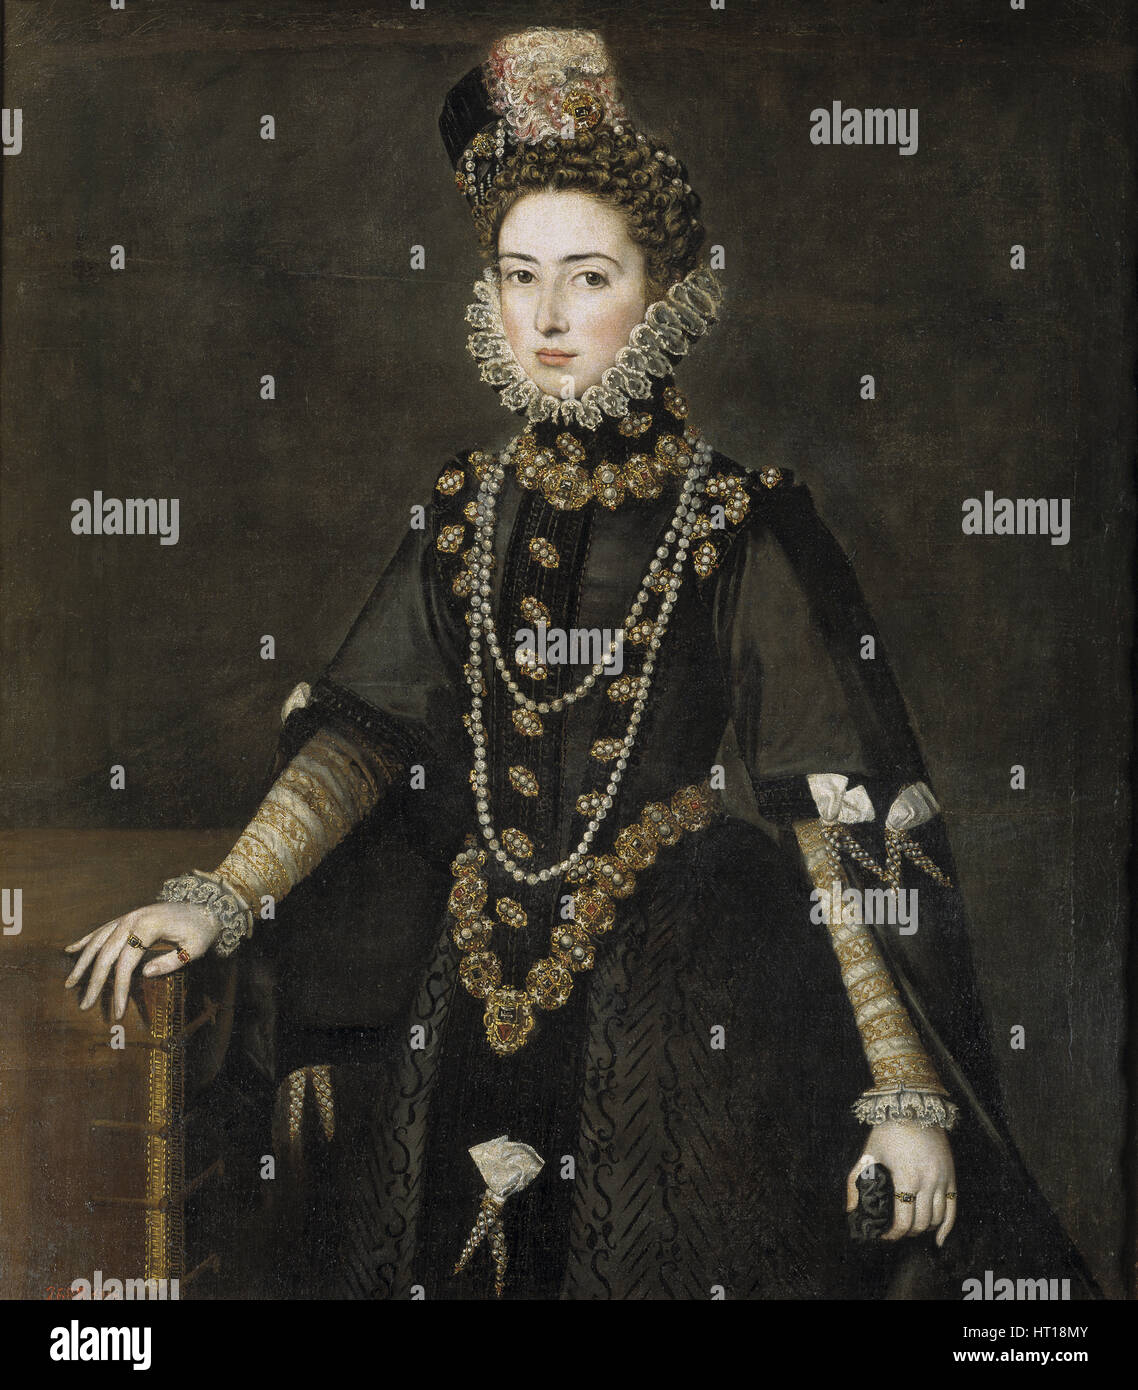 Portrait of the Infanta Catherine Michelle of Spain (1567-1597), 1584-1585. Artist: Sánchez Coello, Alonso - Stock Image